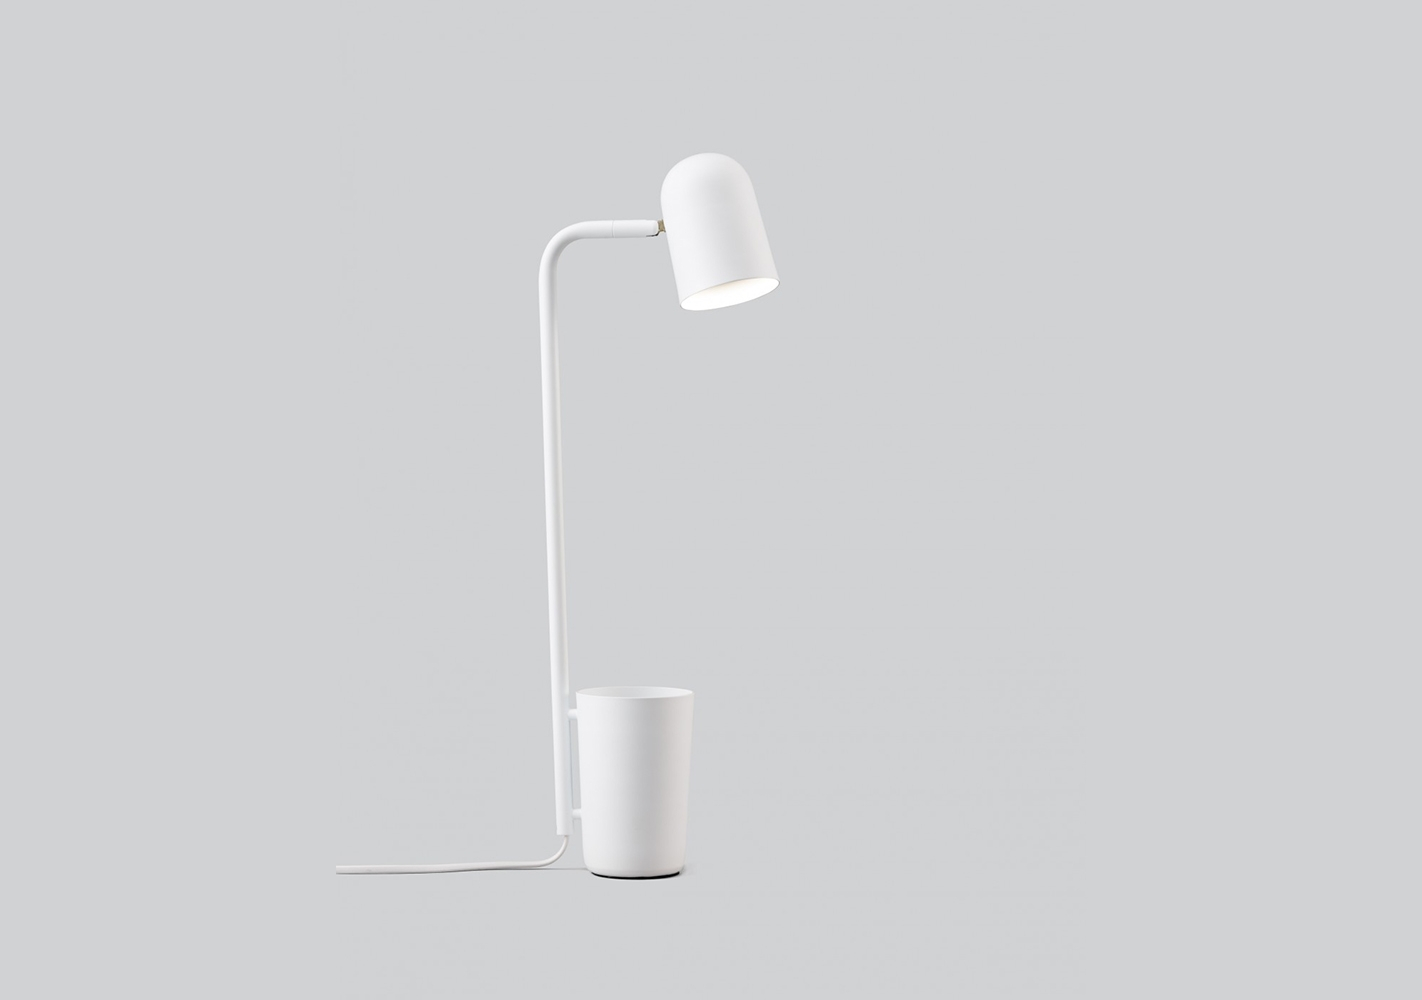 Lampe de table Buddy blanche - NORTHERN LIGHTING